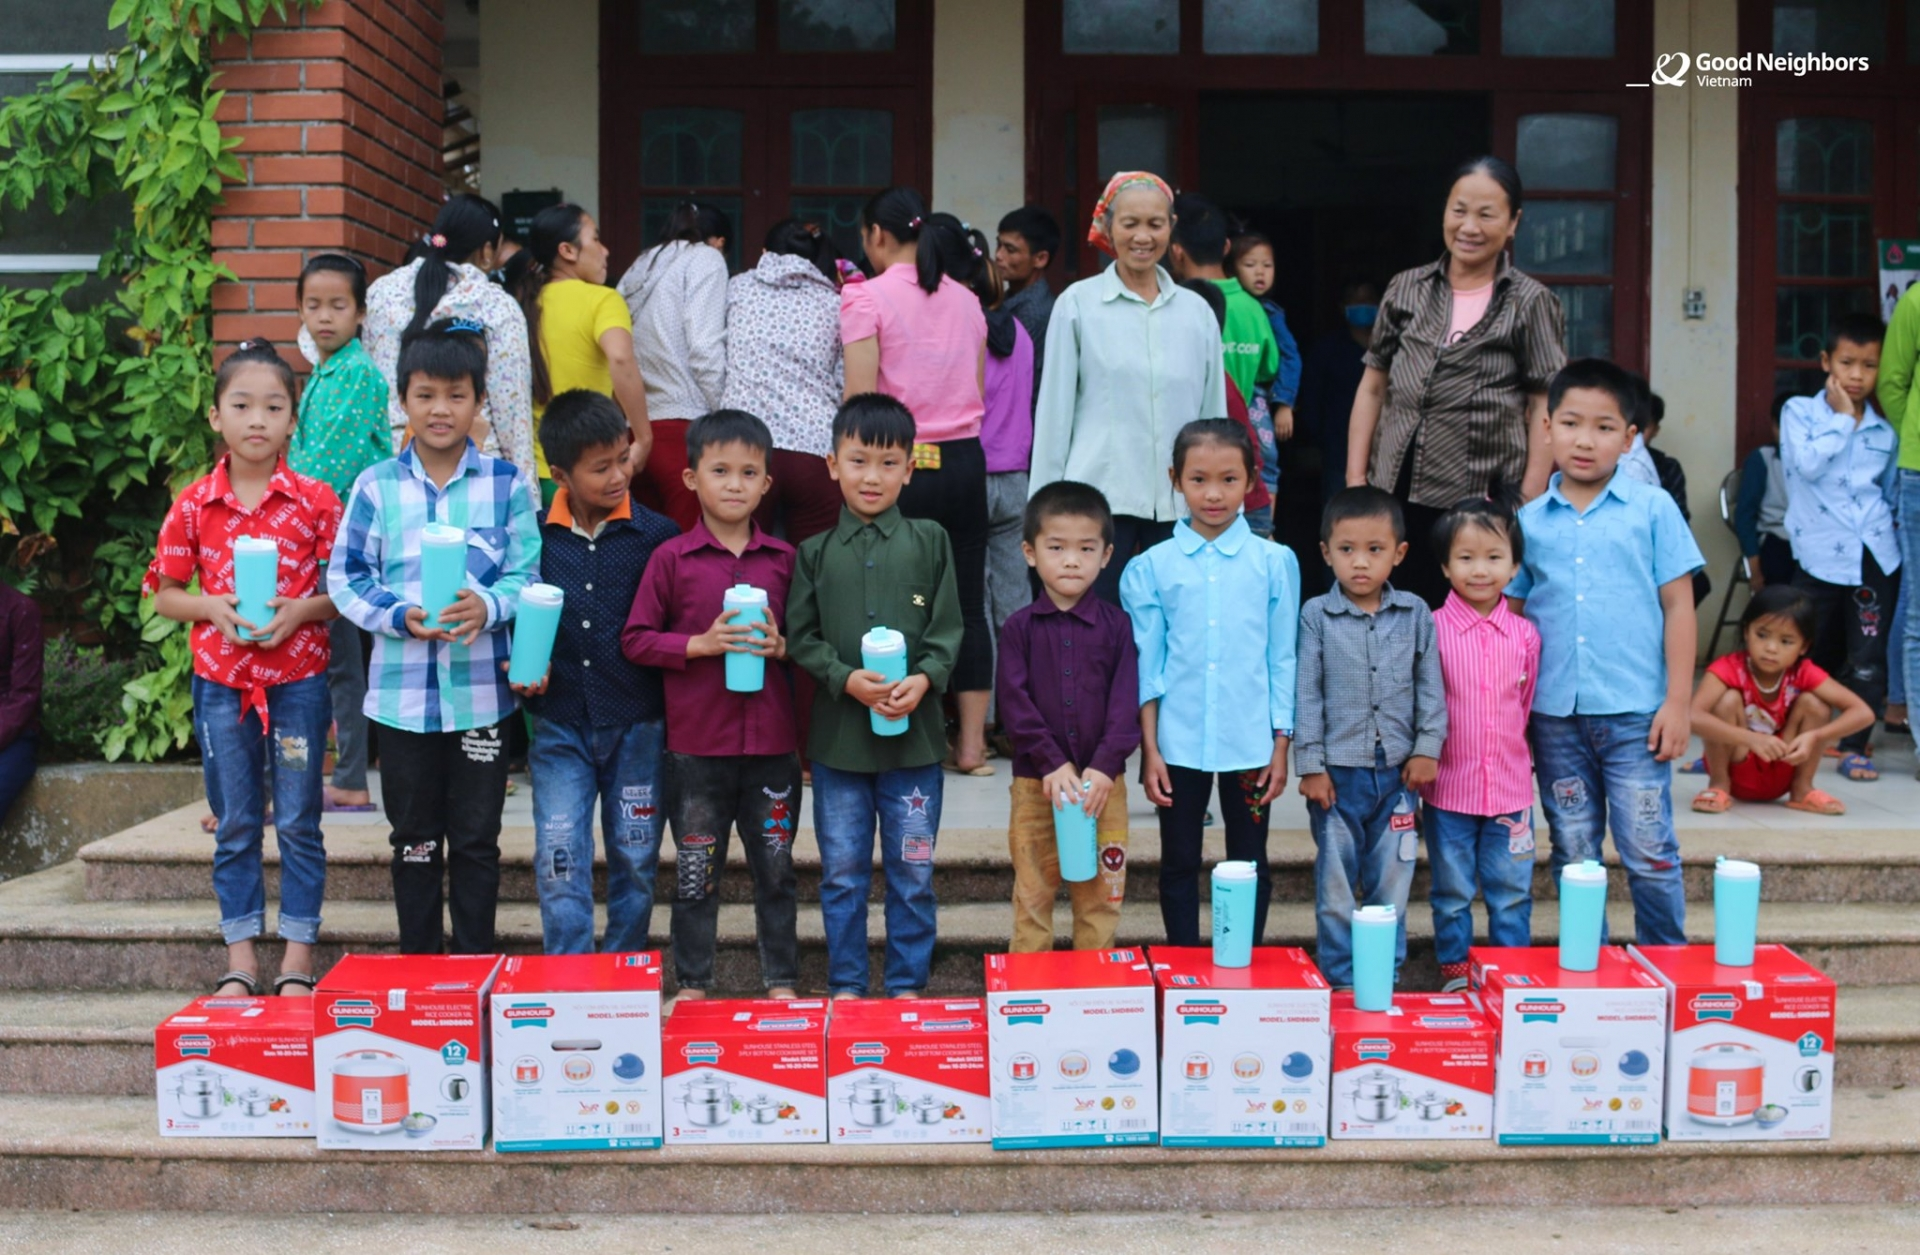 Over 10,000 sponsored children received annual gift from rok's ngo